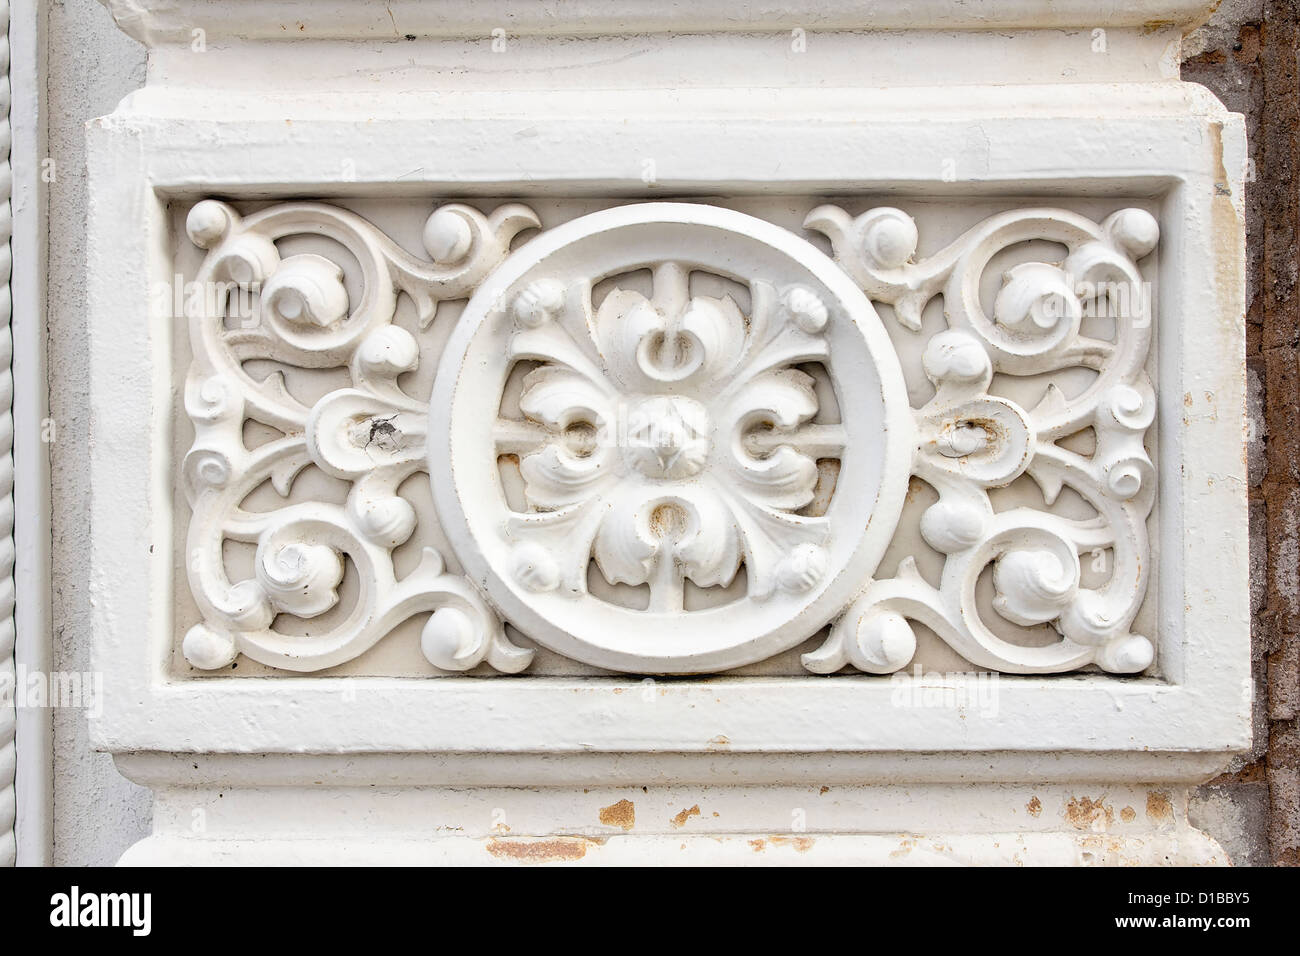 Renaissance Victorian Wall Architectural Detail Background - Stock Image